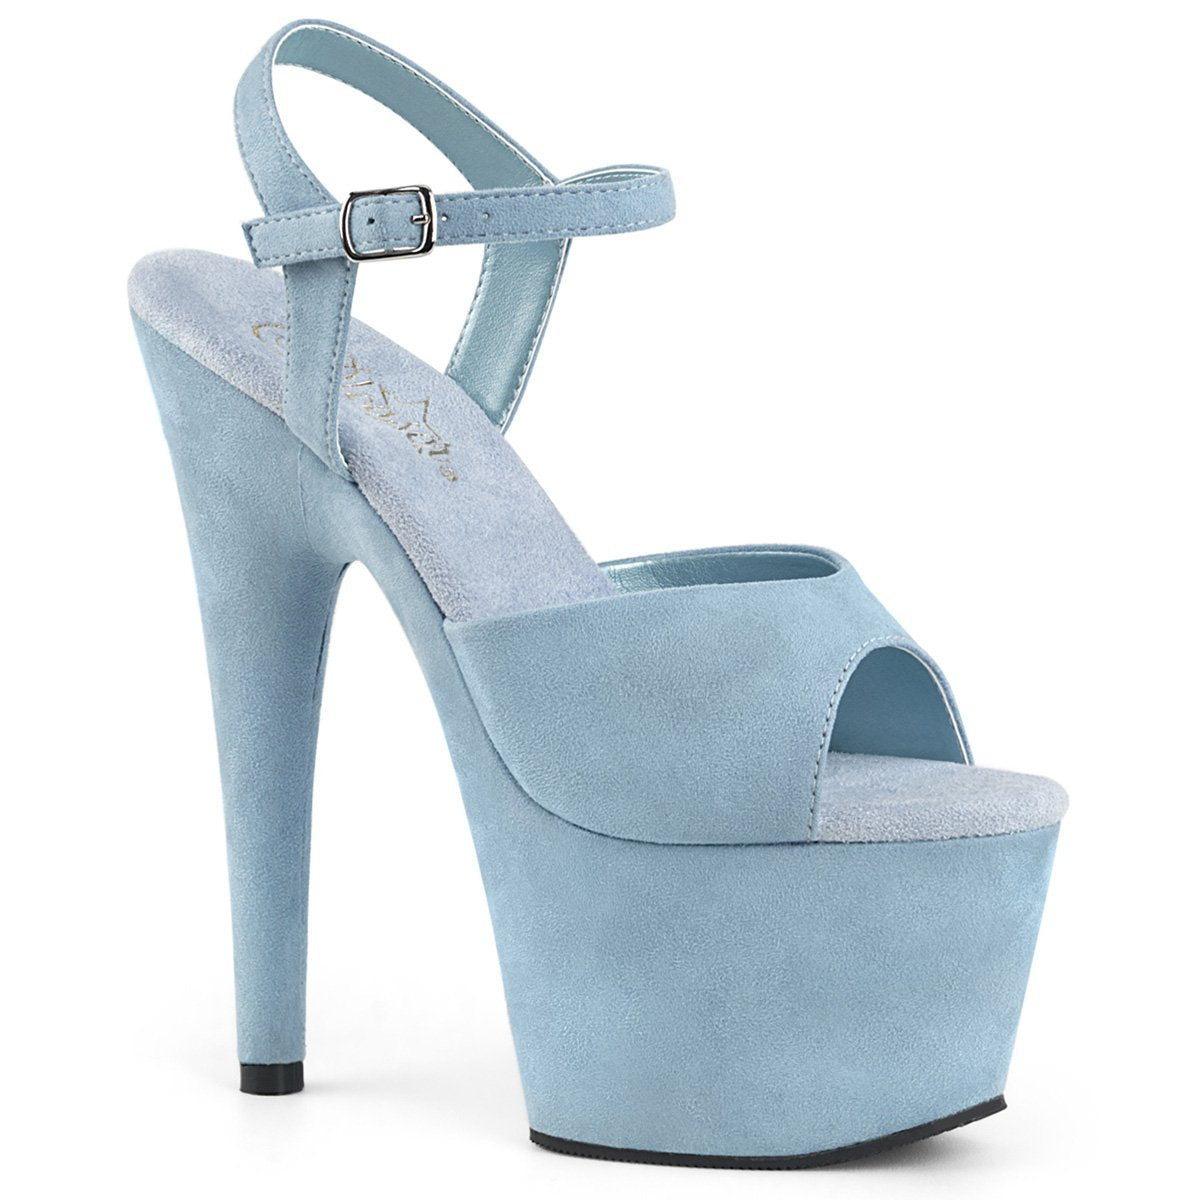 Pleaser Sandal ADORE 709FS/BBFS - Baby Blue